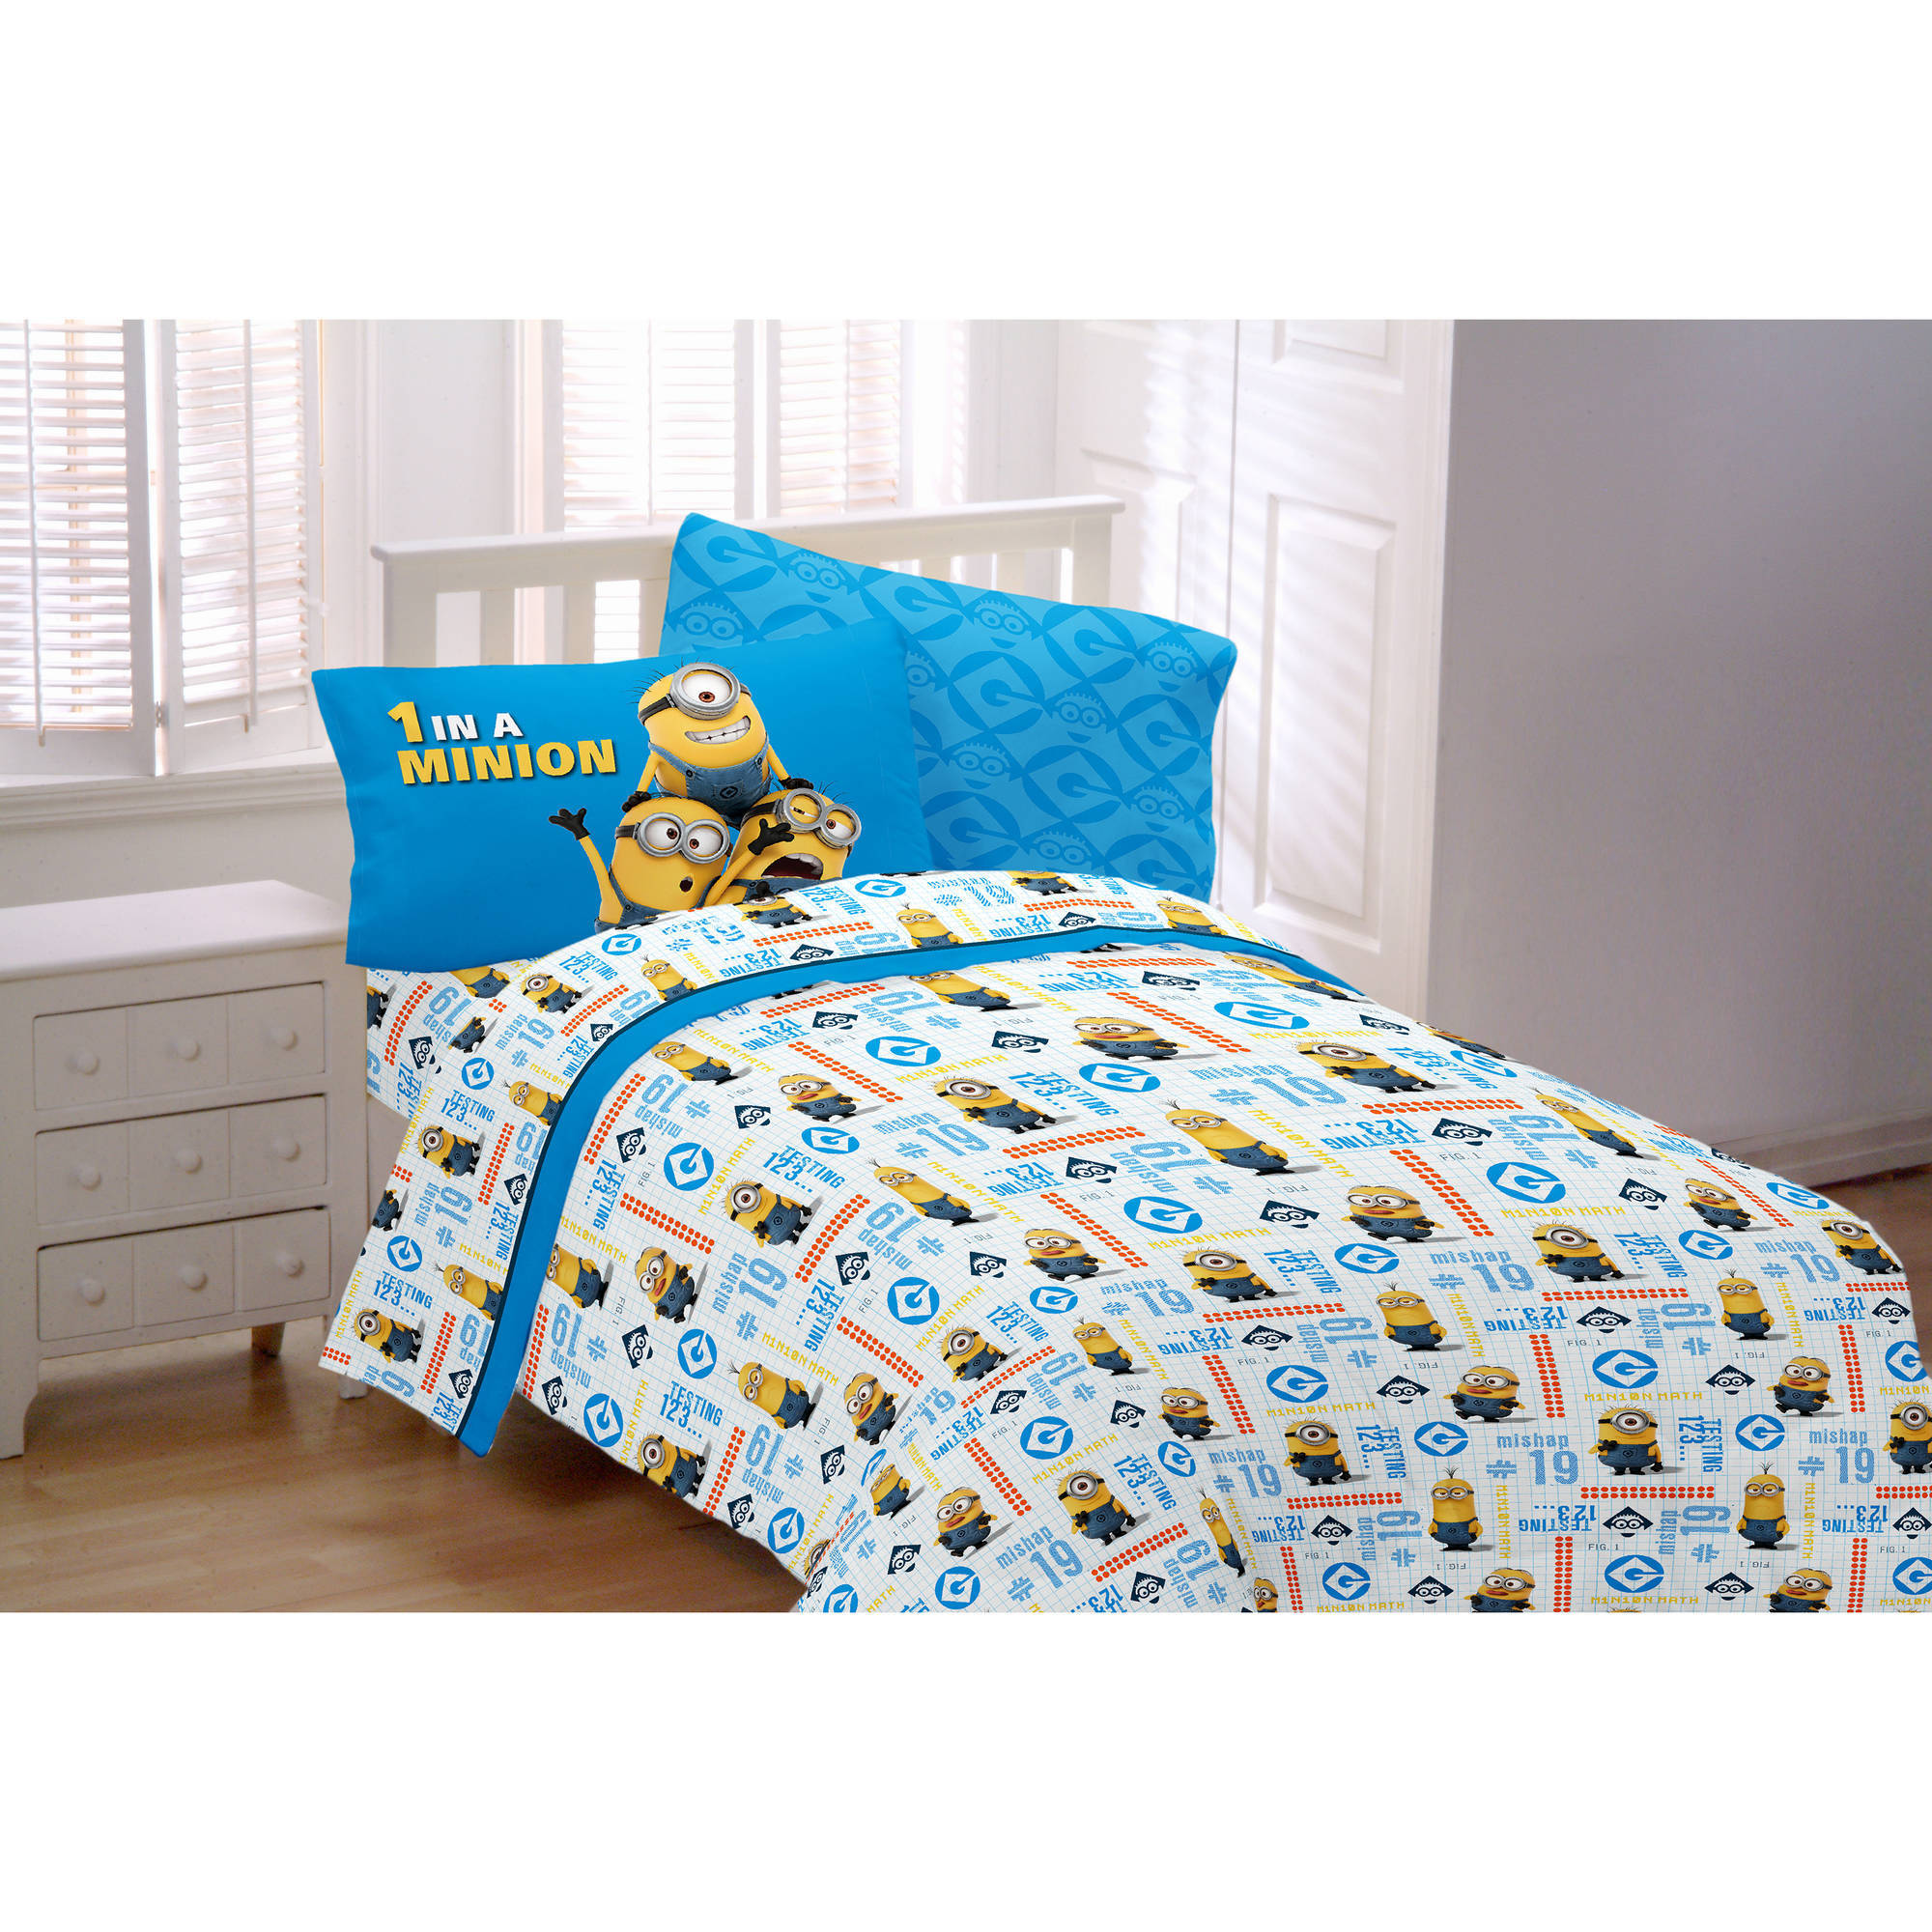 Minions 'Minions at Work' Sheet Bedding Set